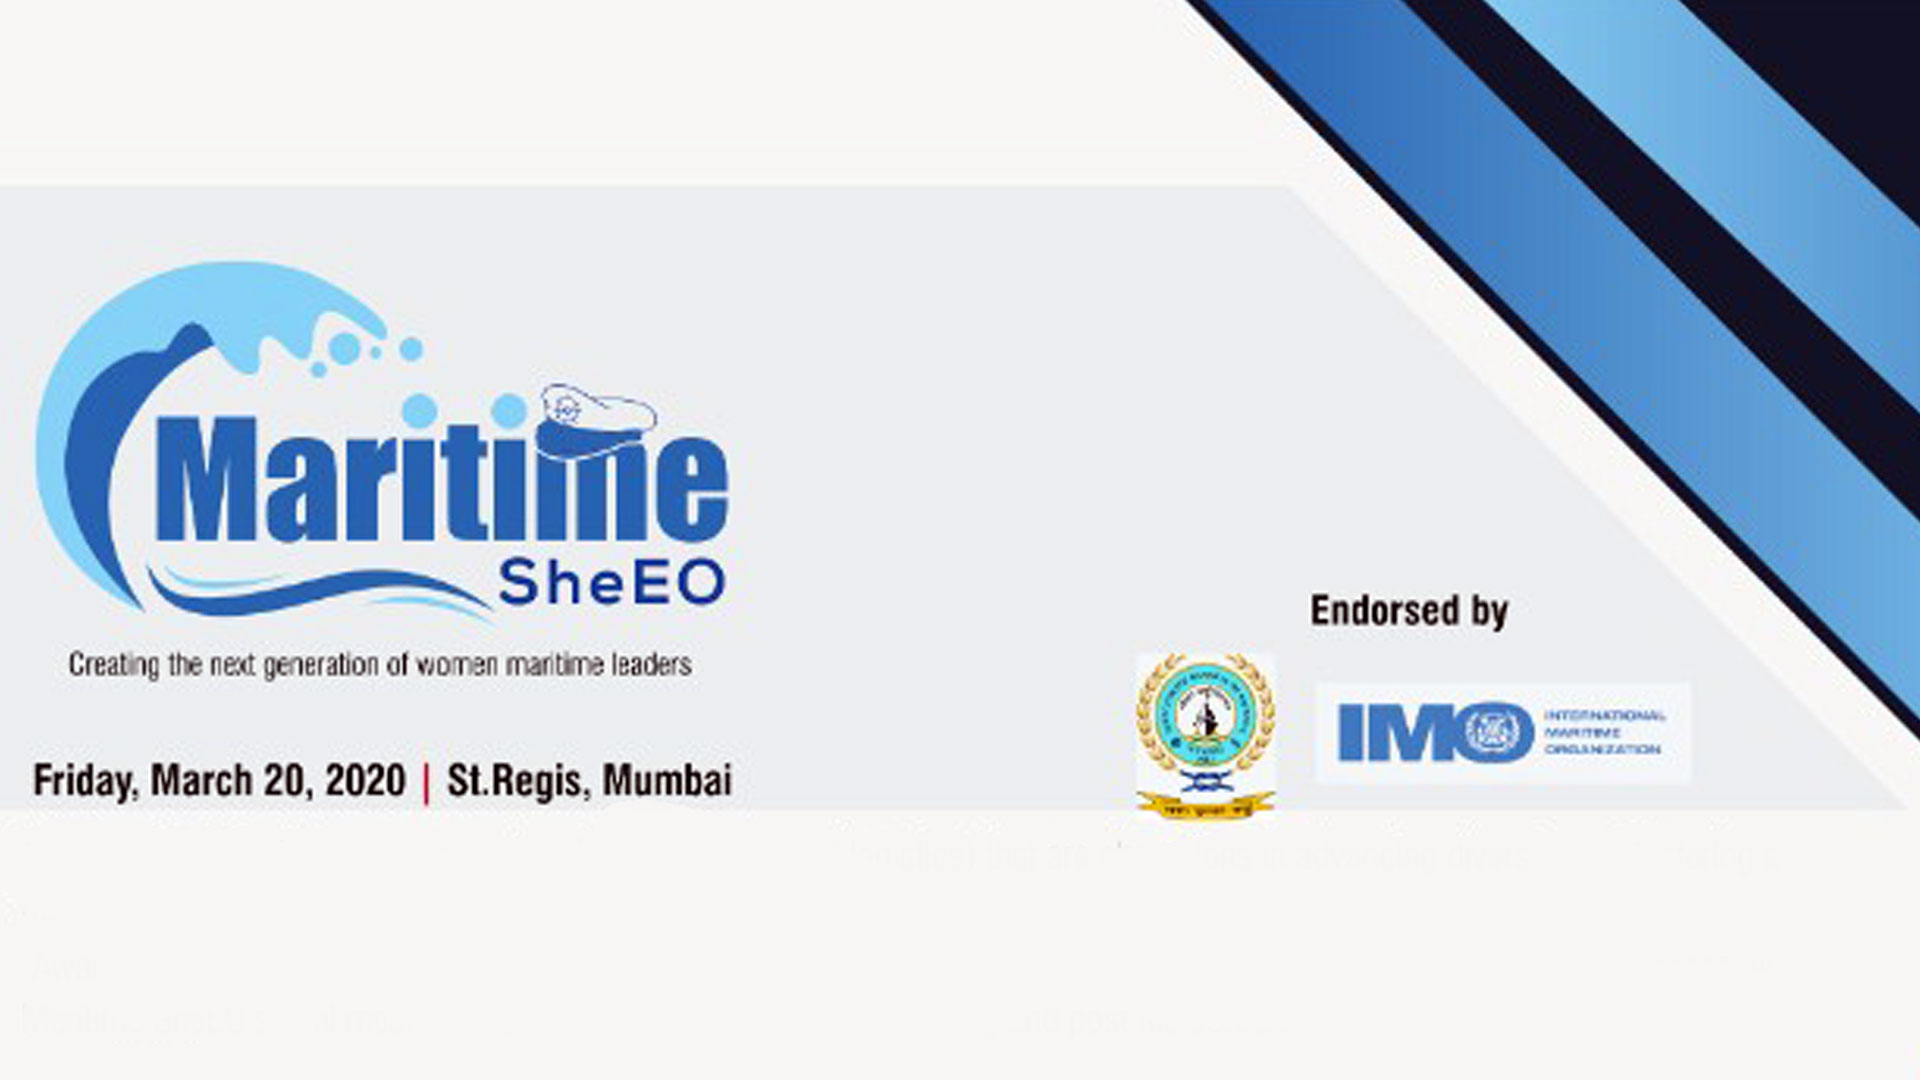 MARITIME SheEO CONFERENCE :FRIDAY, 20 MARCH 2020 @HOTEL ST.REGIS,MUMBAI